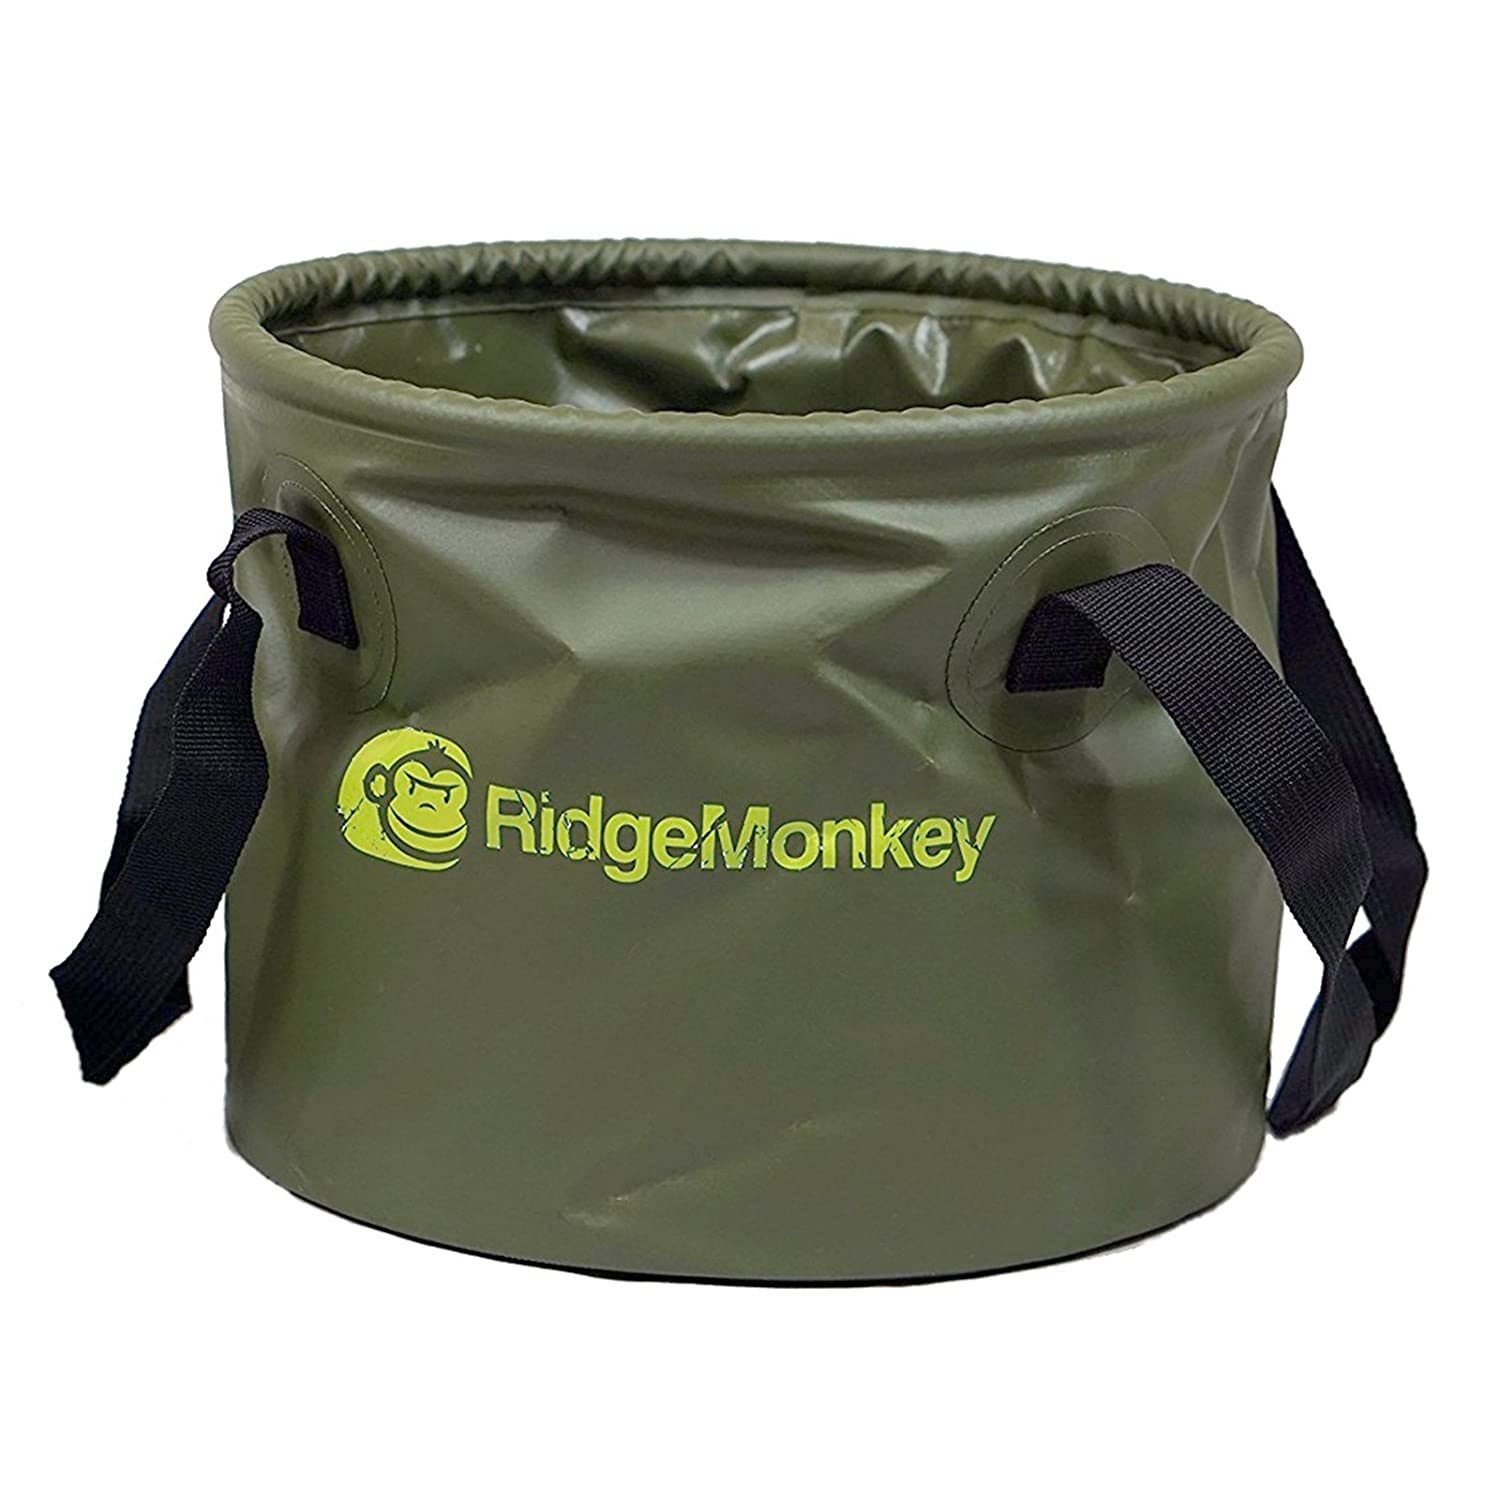 RidgeMonkey 10 Ltr Collapsible Water Bucket (a)